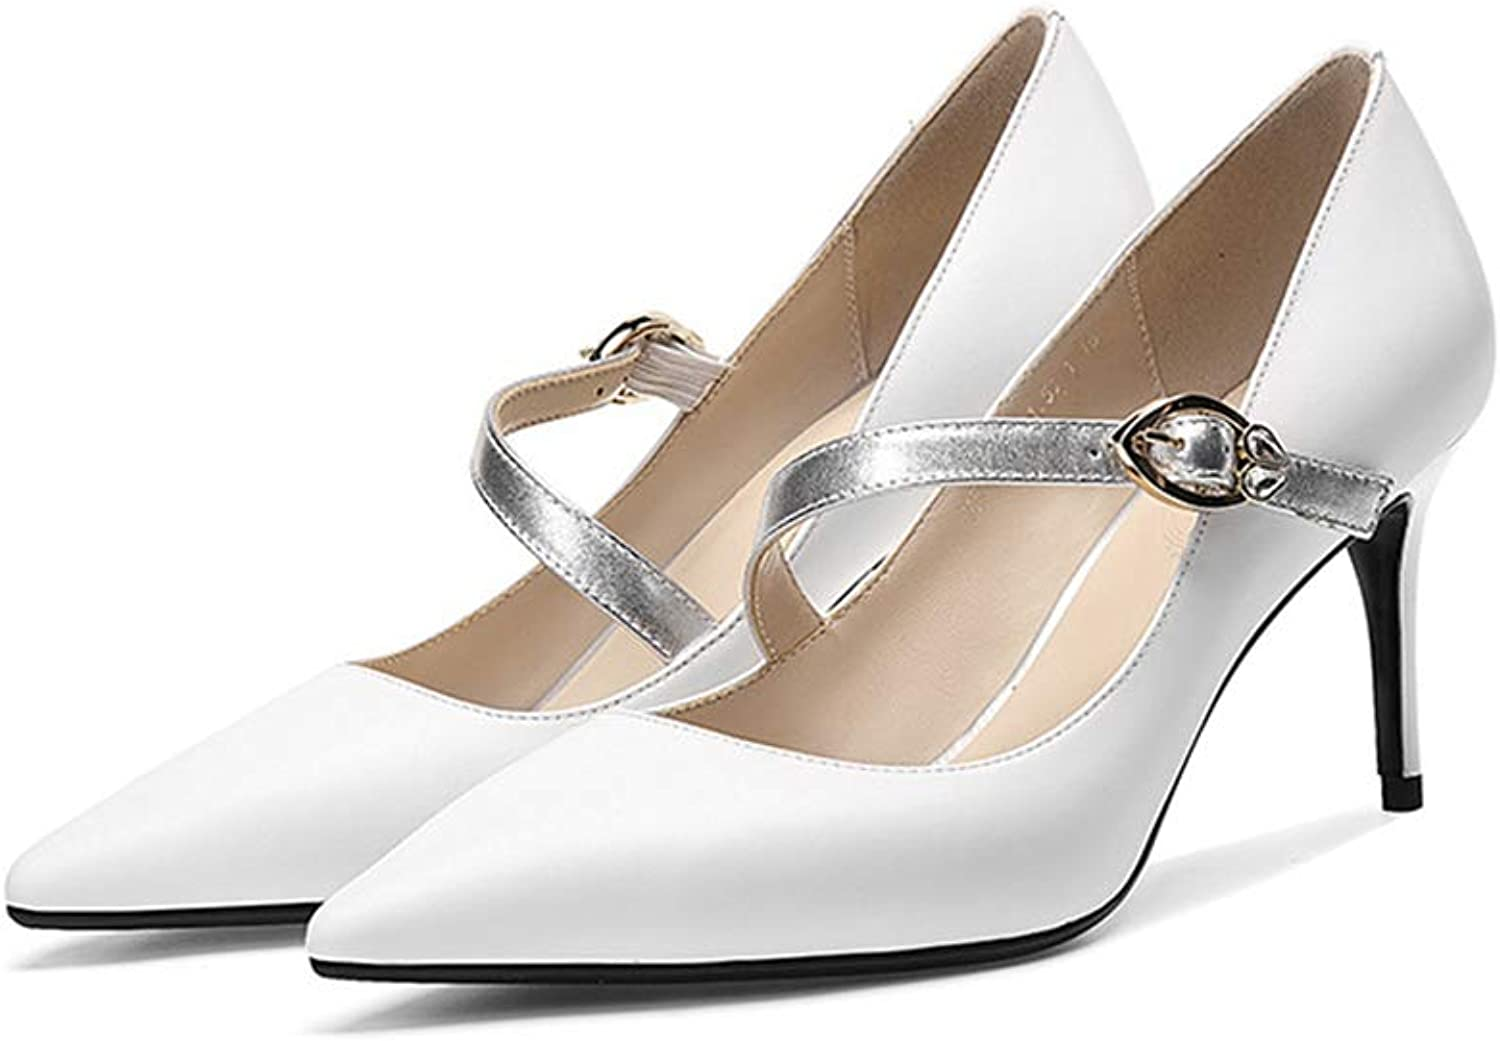 Phil Betty Women's Pumps,Mary Jane Thin Heel White Black Elegant Dress Wedding Party shoes